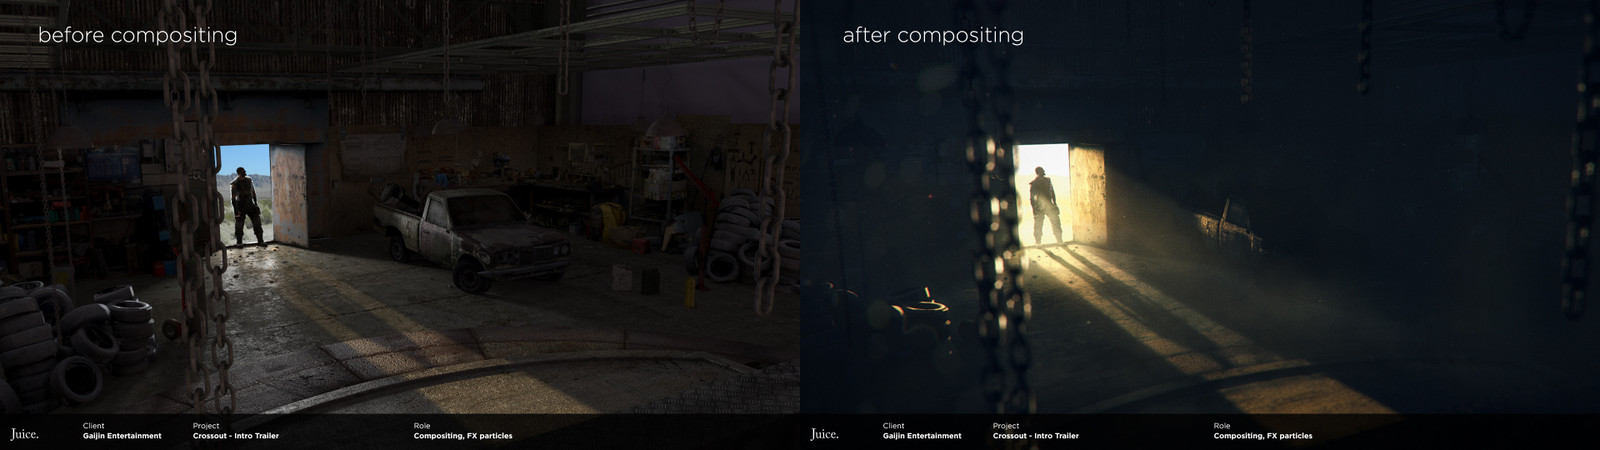 Before and after compositing